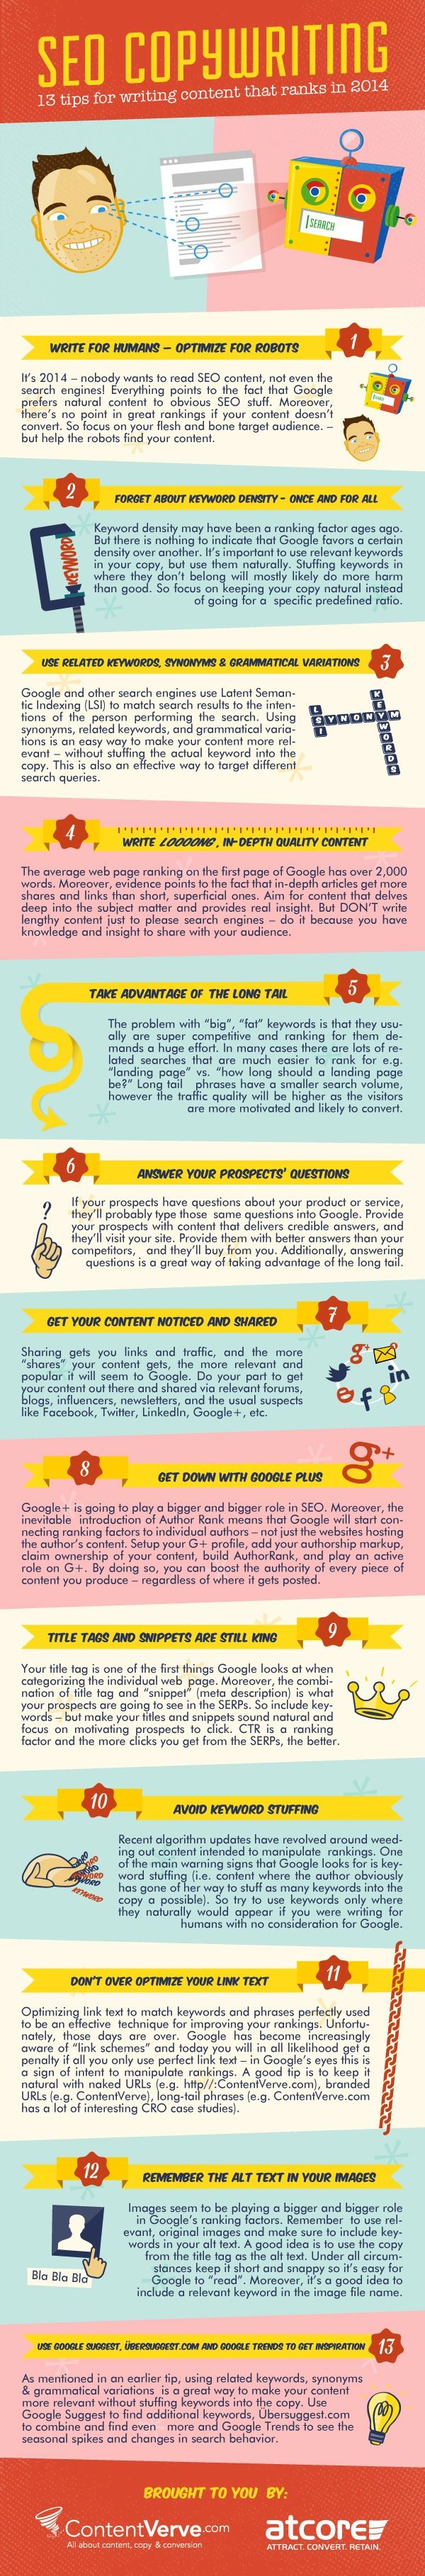 SEO-How-to-write-content-that-ranks-2014_[infographic]: Writing Content, Marketing, Social Media, Seo Copywriter, Engine Optimism, Tips, 2014 Infographic, Search Engine, Blog